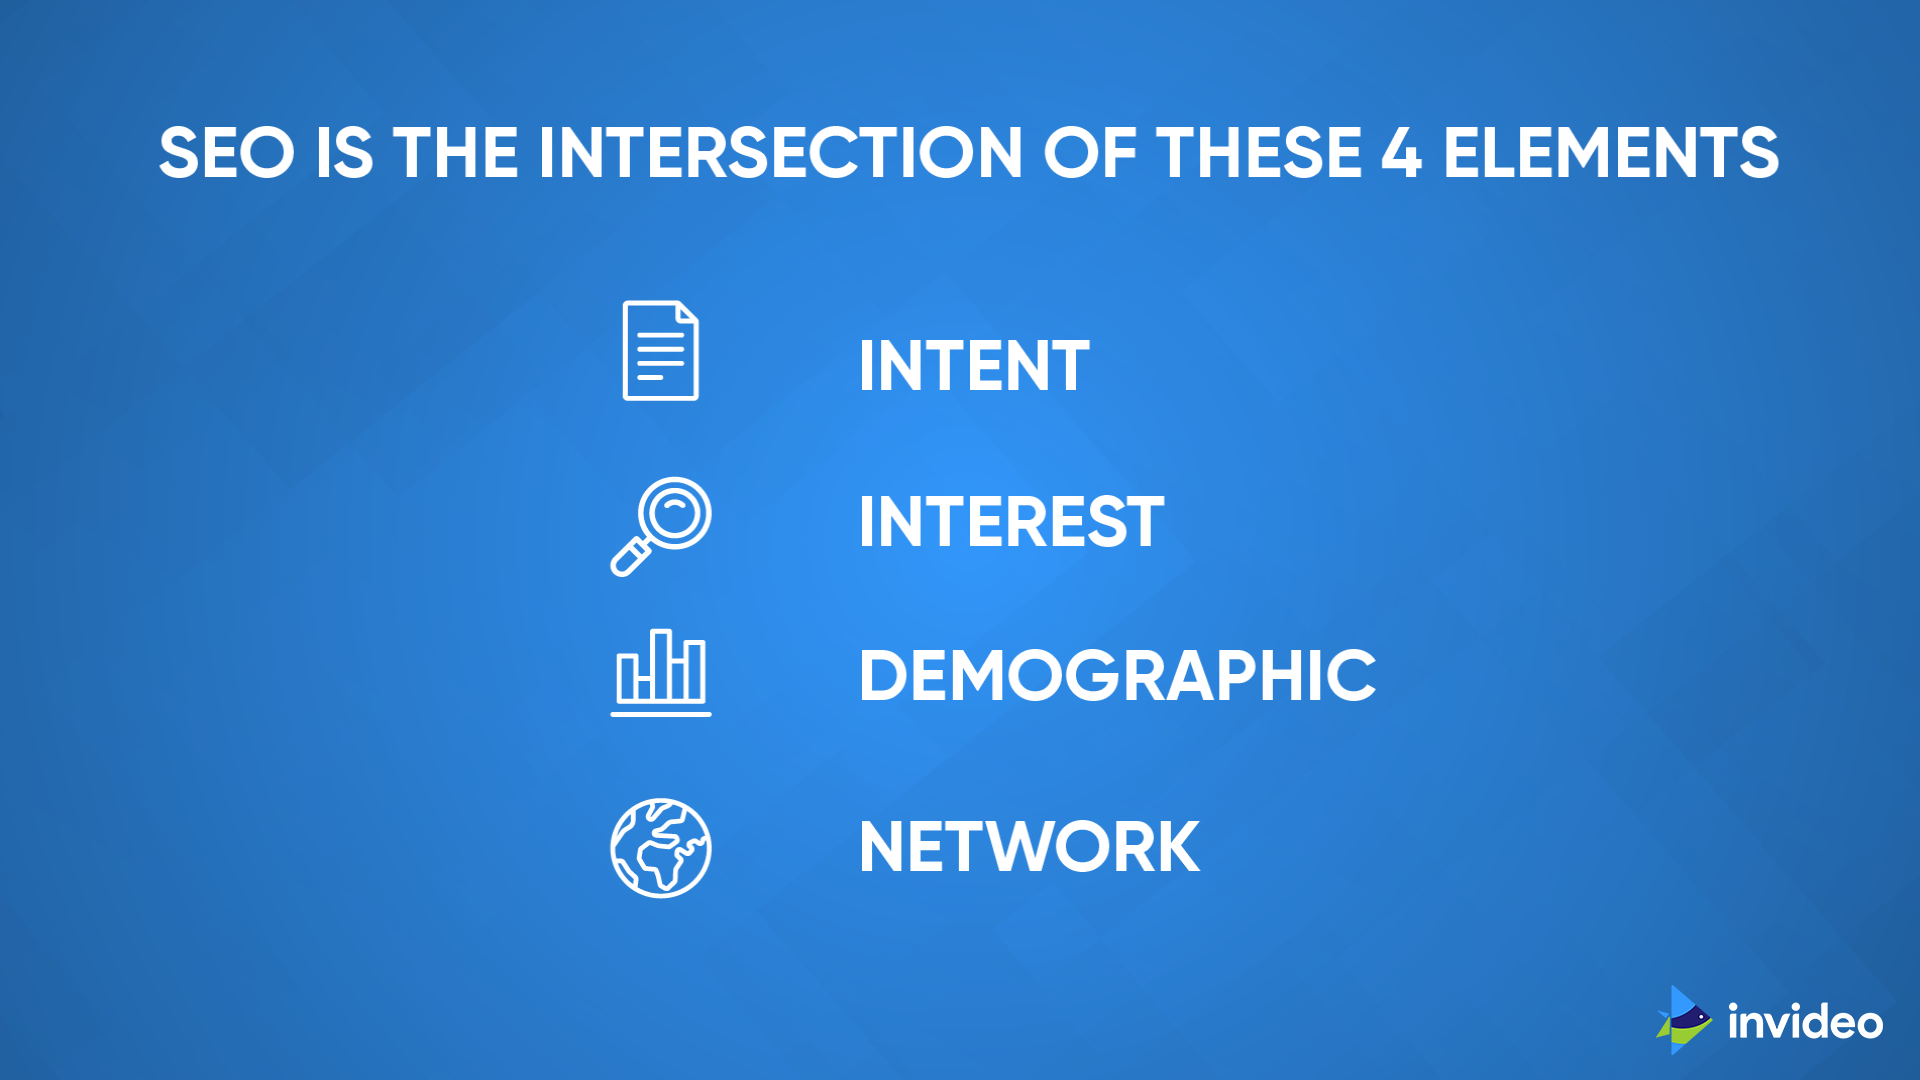 SEO- Intersection of 4 elements